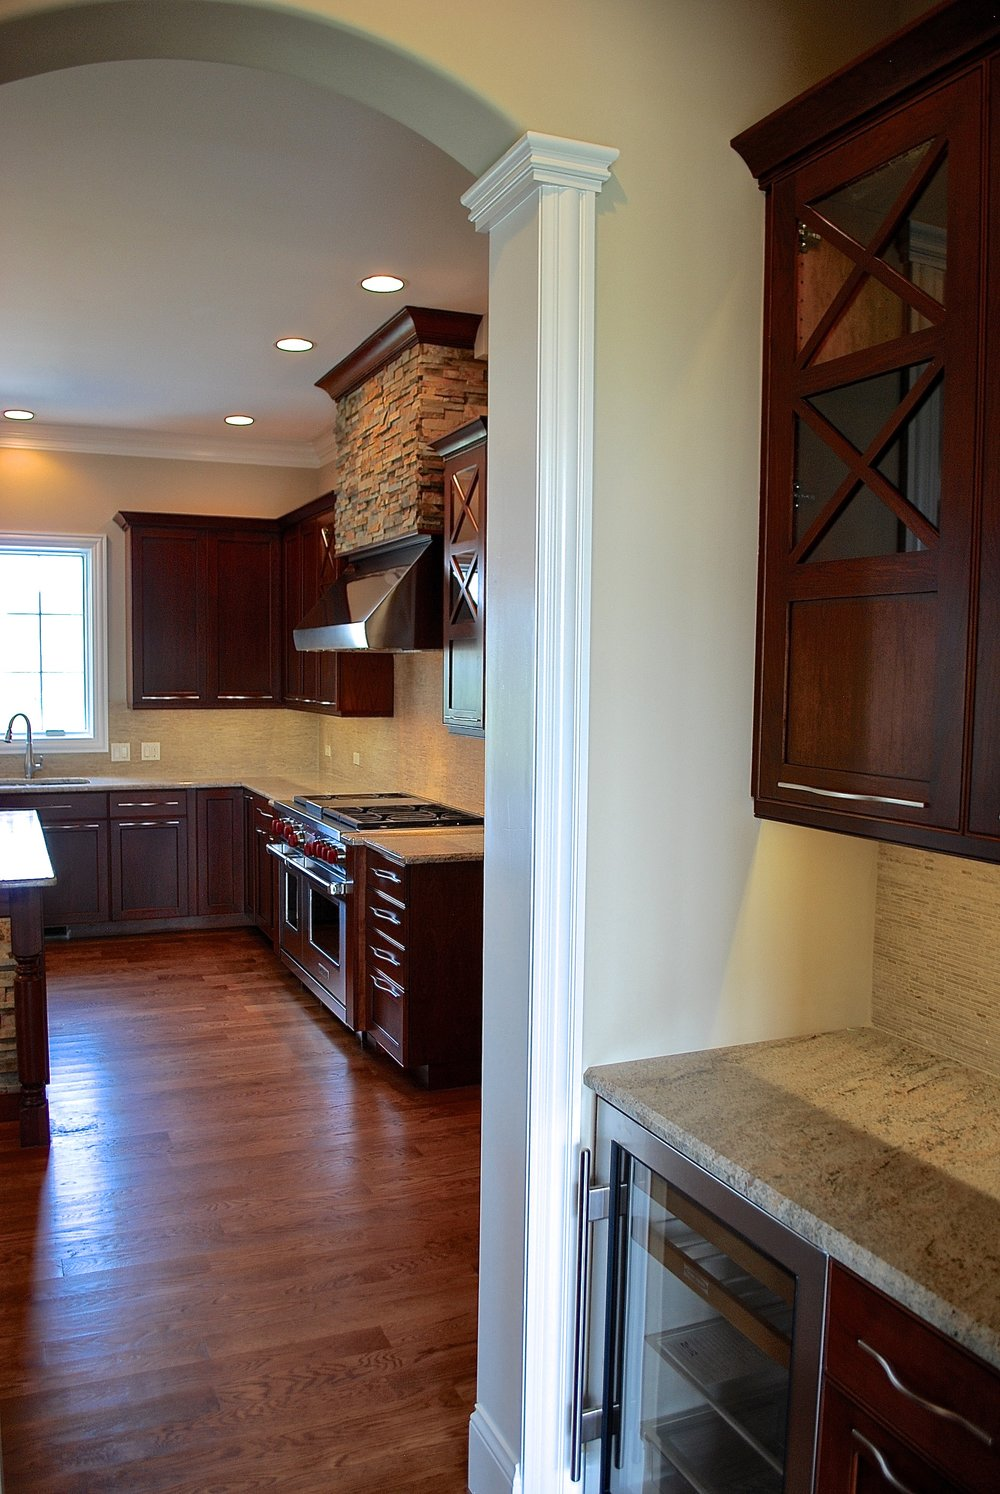 TRANSITIONAL BUTLERS PANTRY WITH GRASS BACKSPLASH TILE